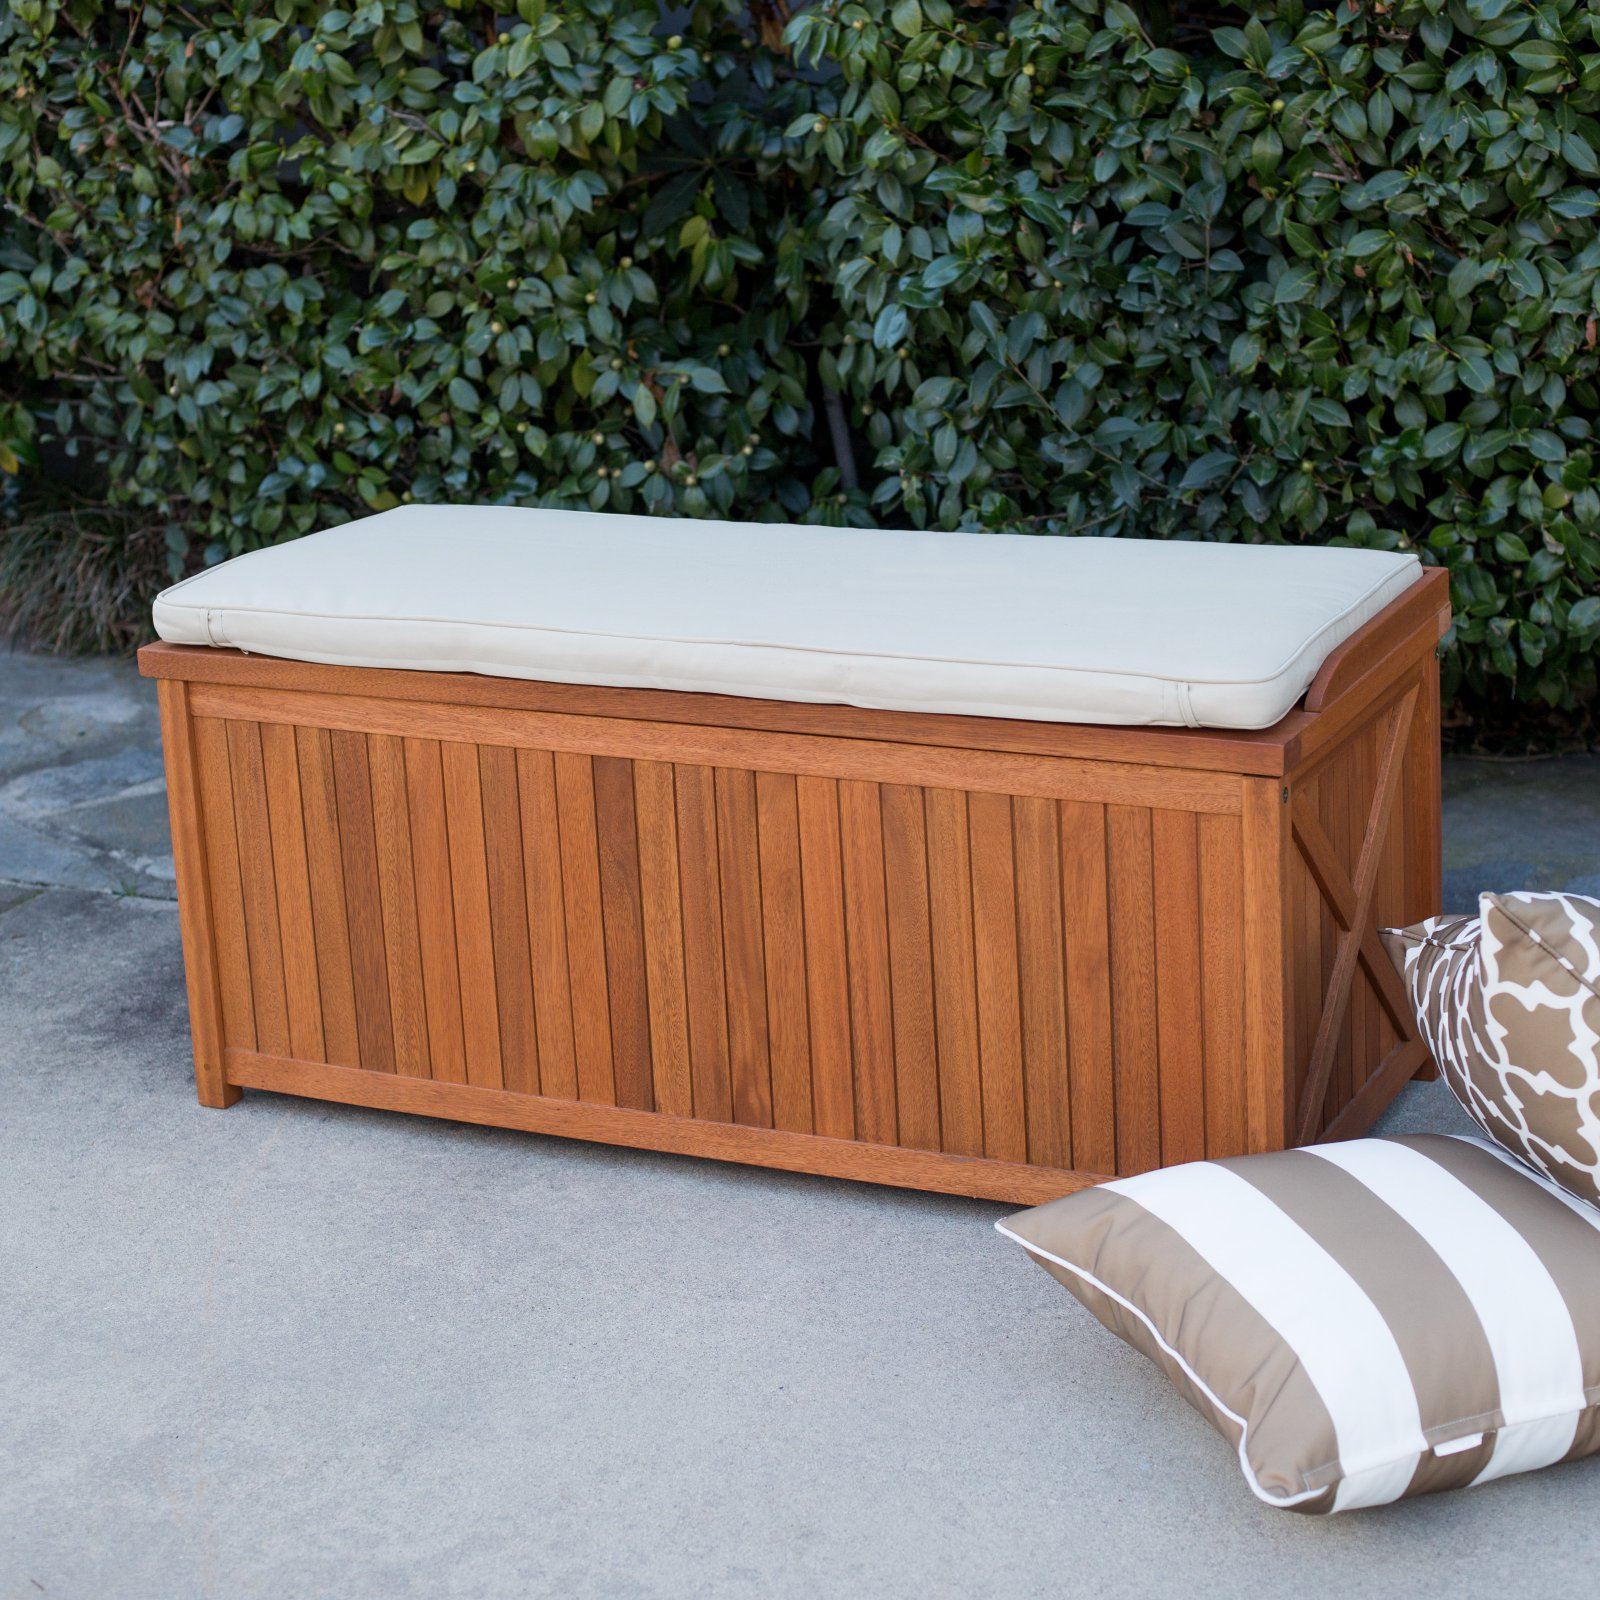 Belham Living Brighton 48 in. Outdoor Storage Deck Box with Cushion - Natural